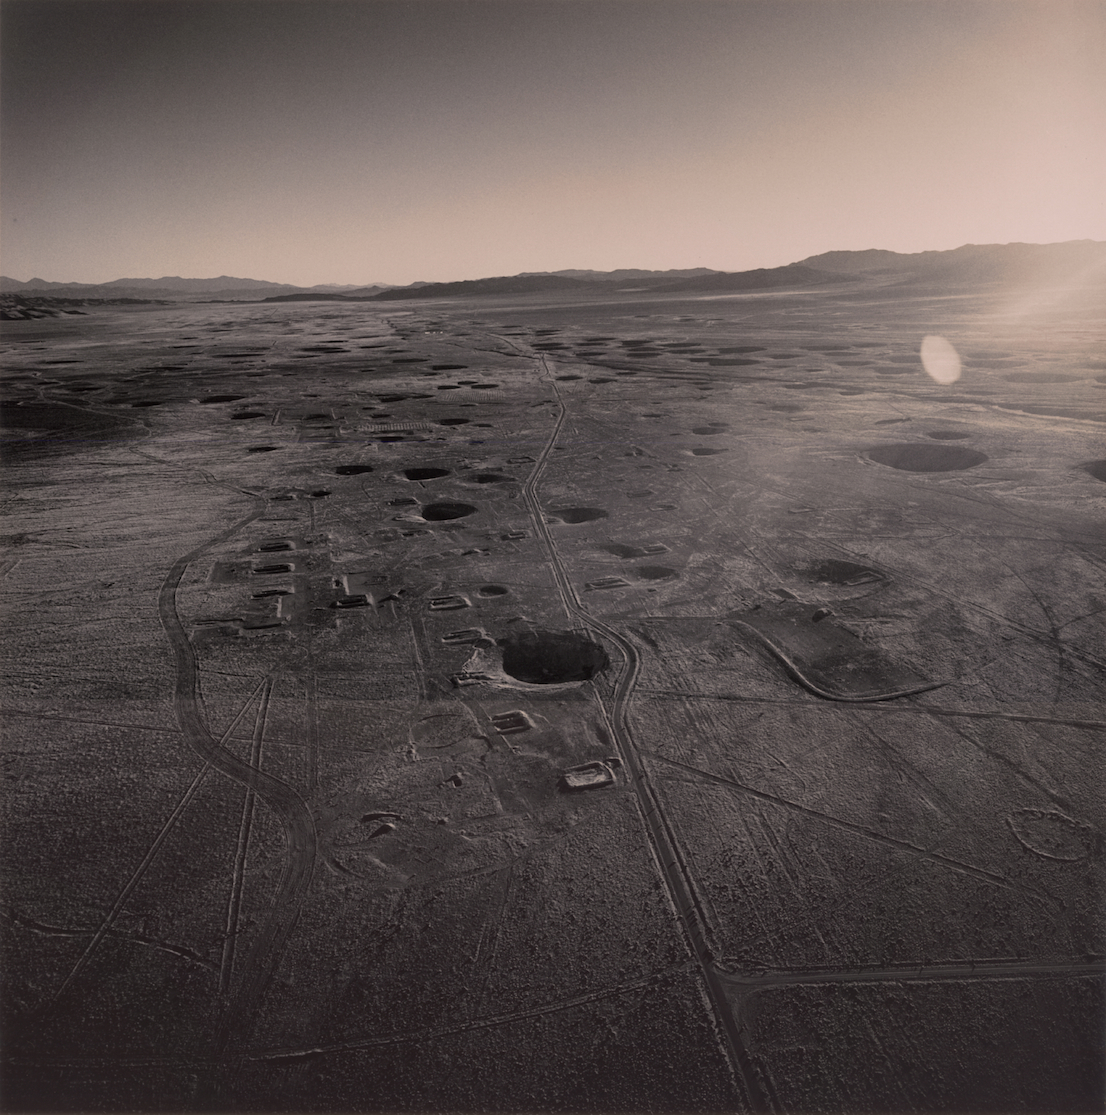 Emmet Gowin, Looking South from Area 10, Nevada Test Site, 1996. Courtesy Pace/Macgill Gallery, New York, © Emmet Gowin.